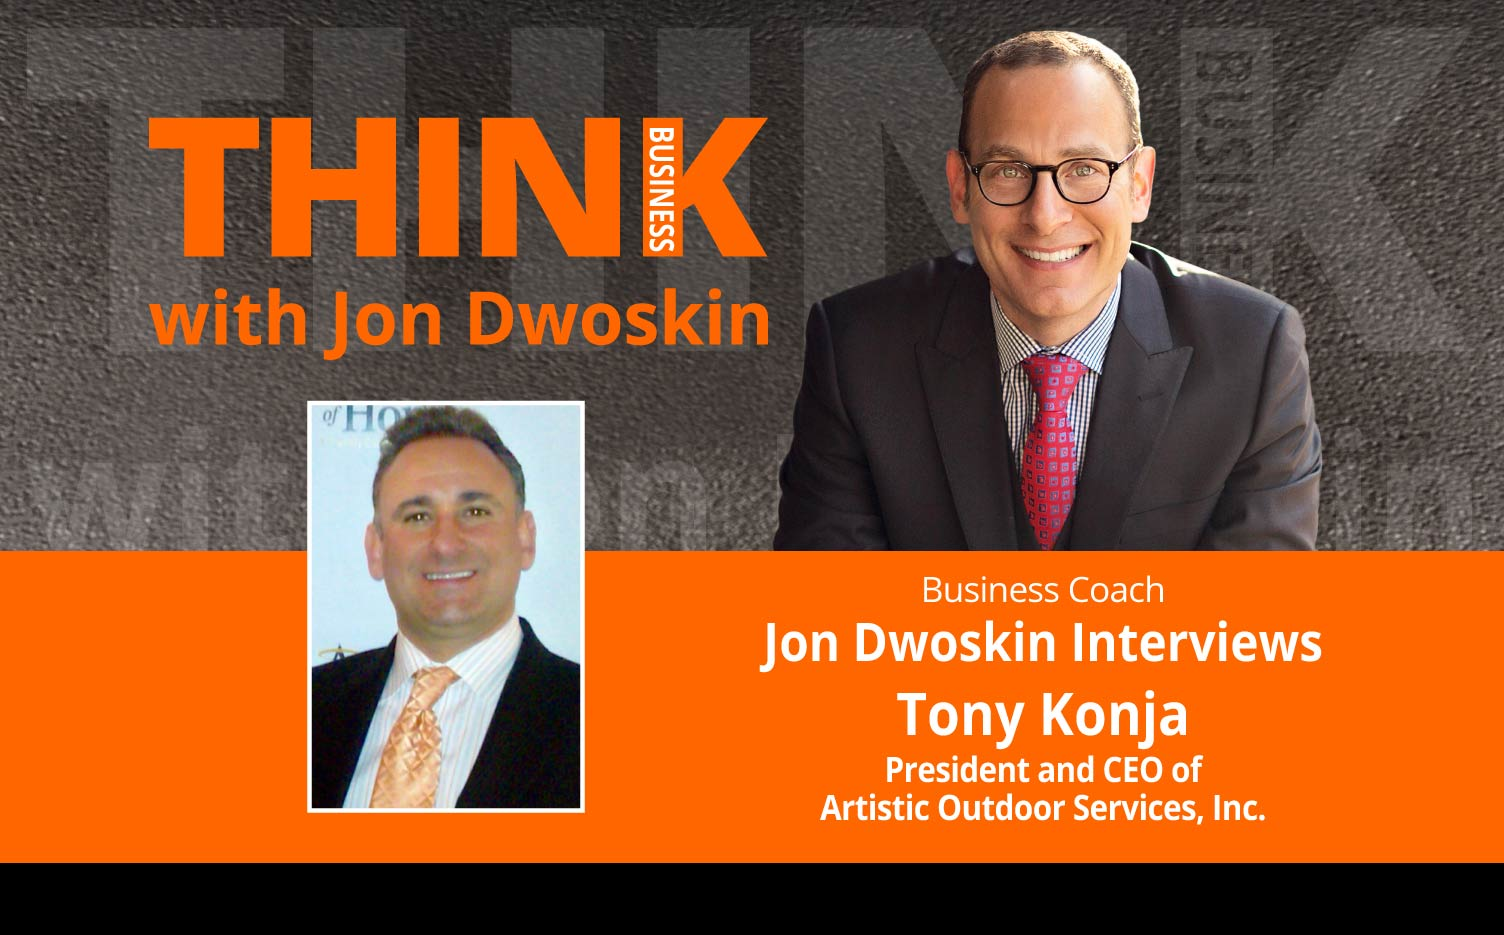 THINK Business Podcast: Jon Dwoskin Interviews Tony Konja, President and CEO of Artistic Outdoor Services, Inc.